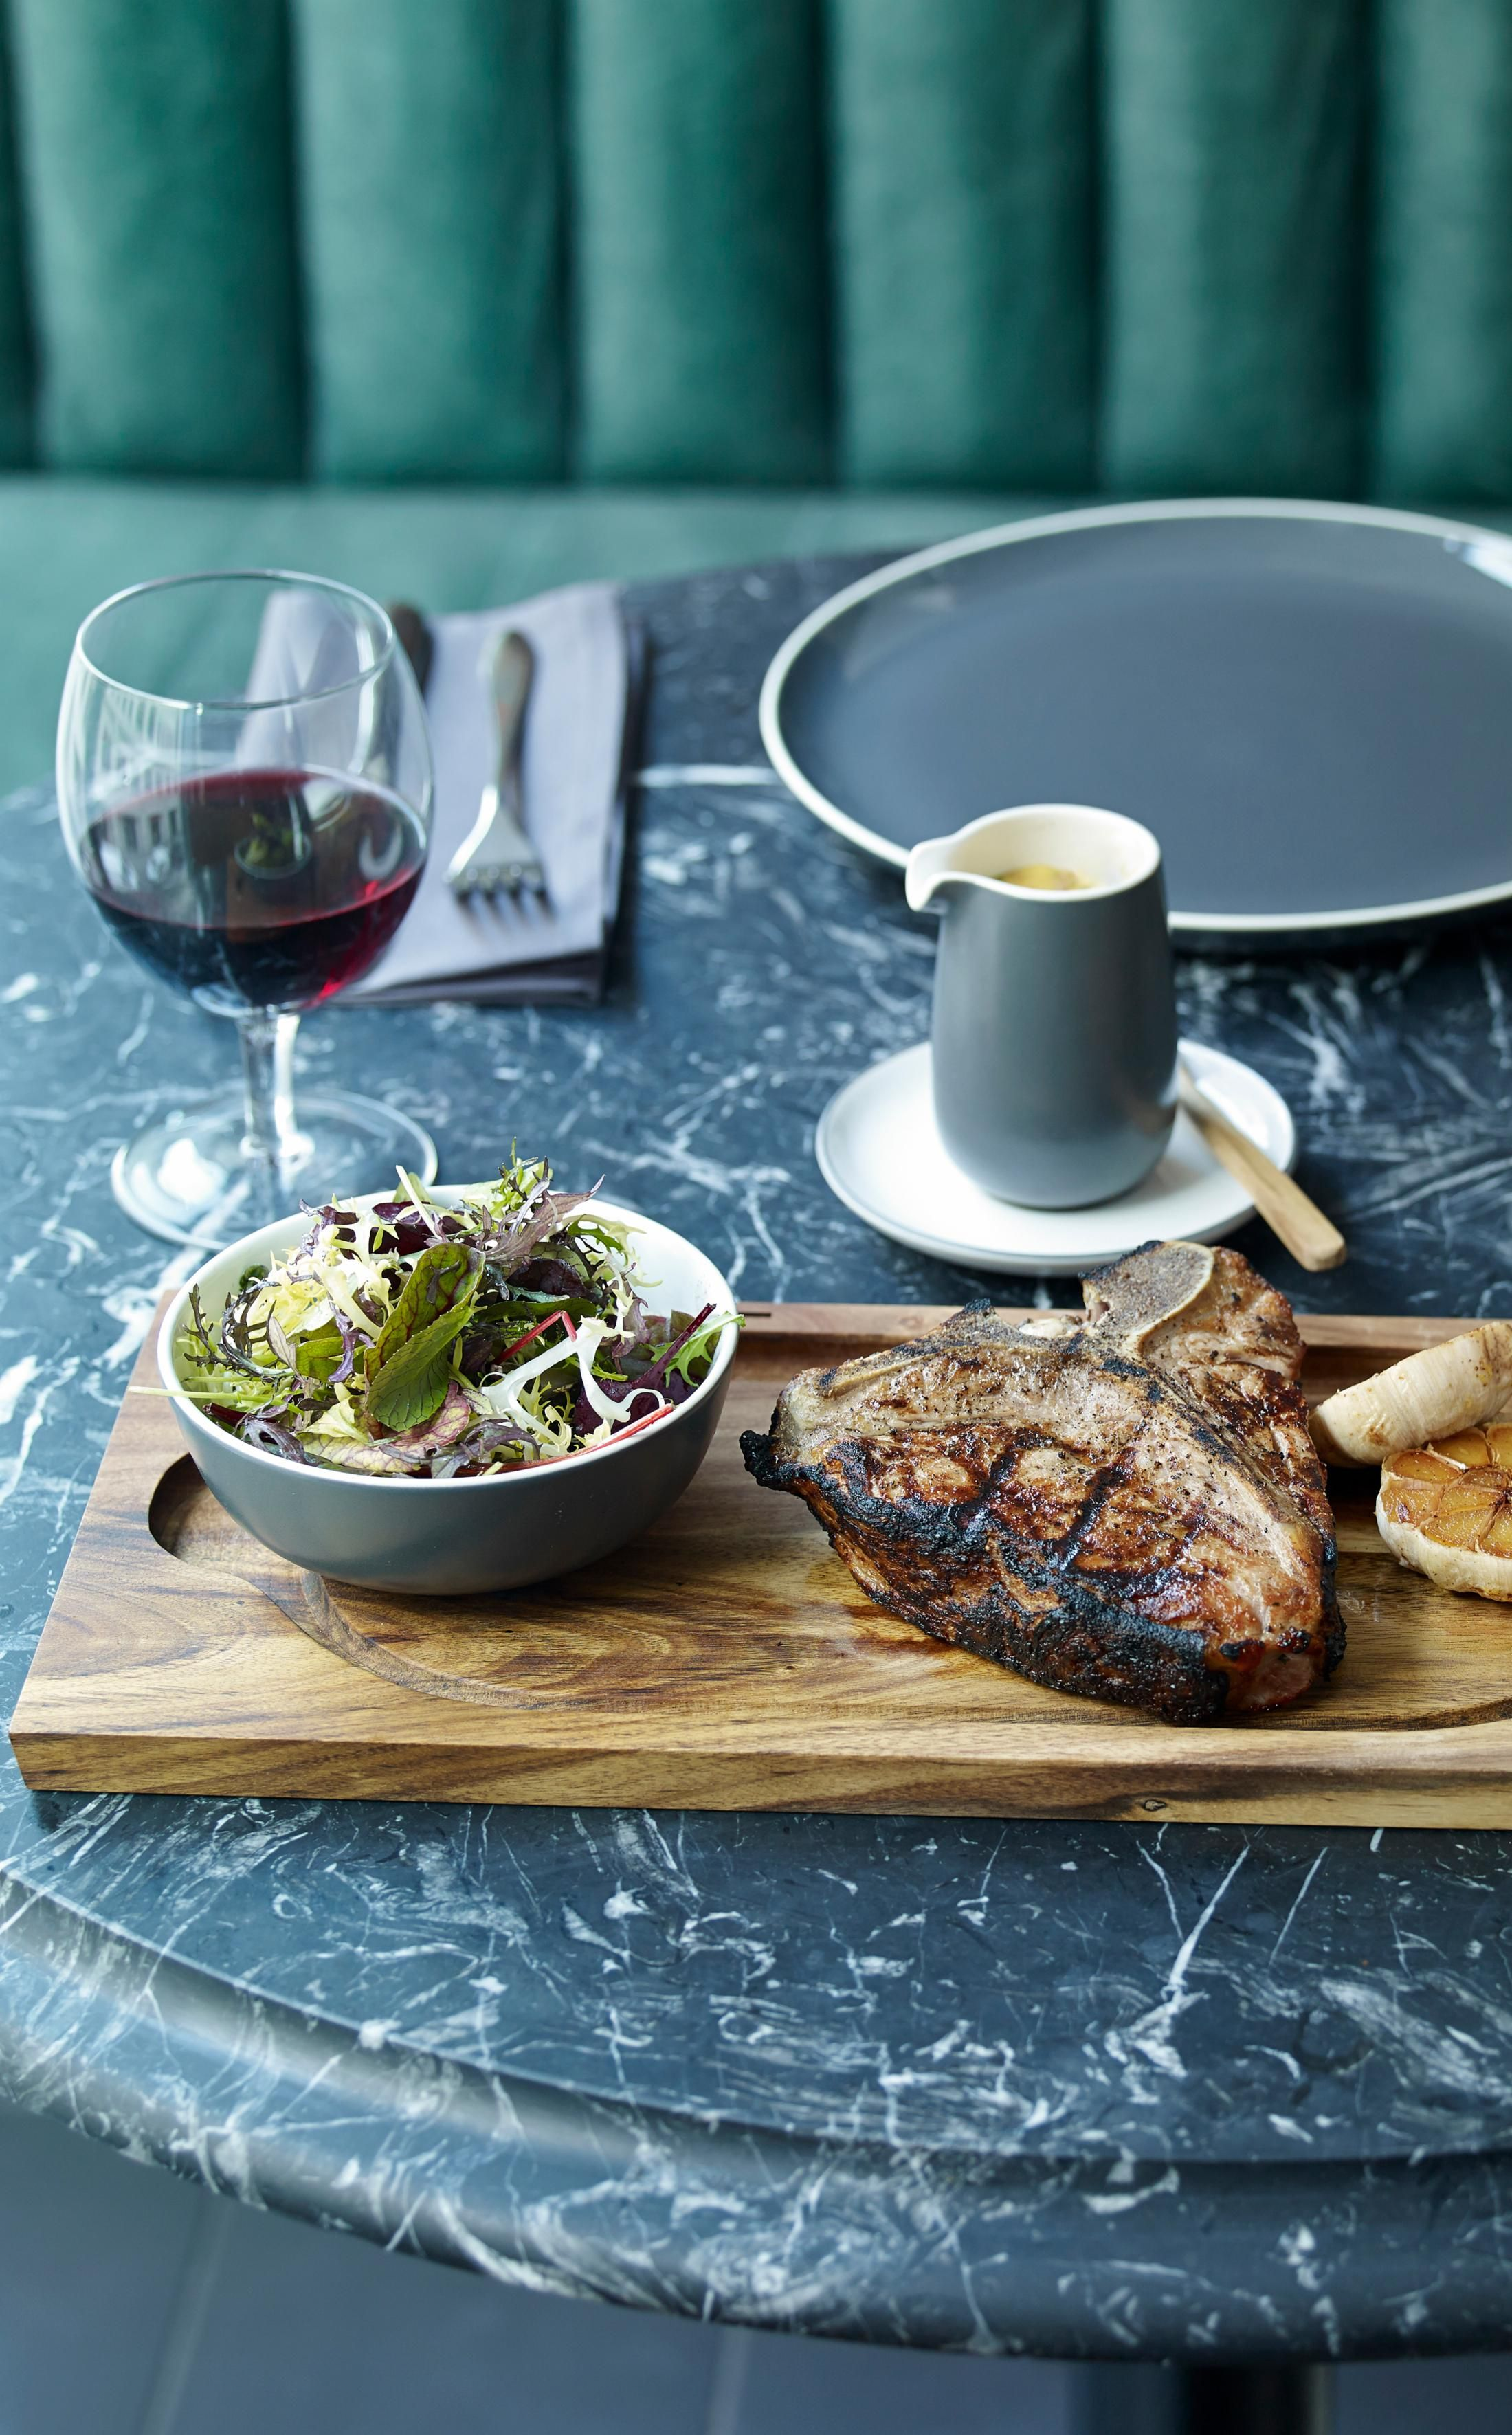 Dine in style with Gordon Ramsay\u0027s tableware collection Bread Street for Royal Doulton. Shop & Dine in style with Gordon Ramsay\u0027s tableware collection: Bread ...